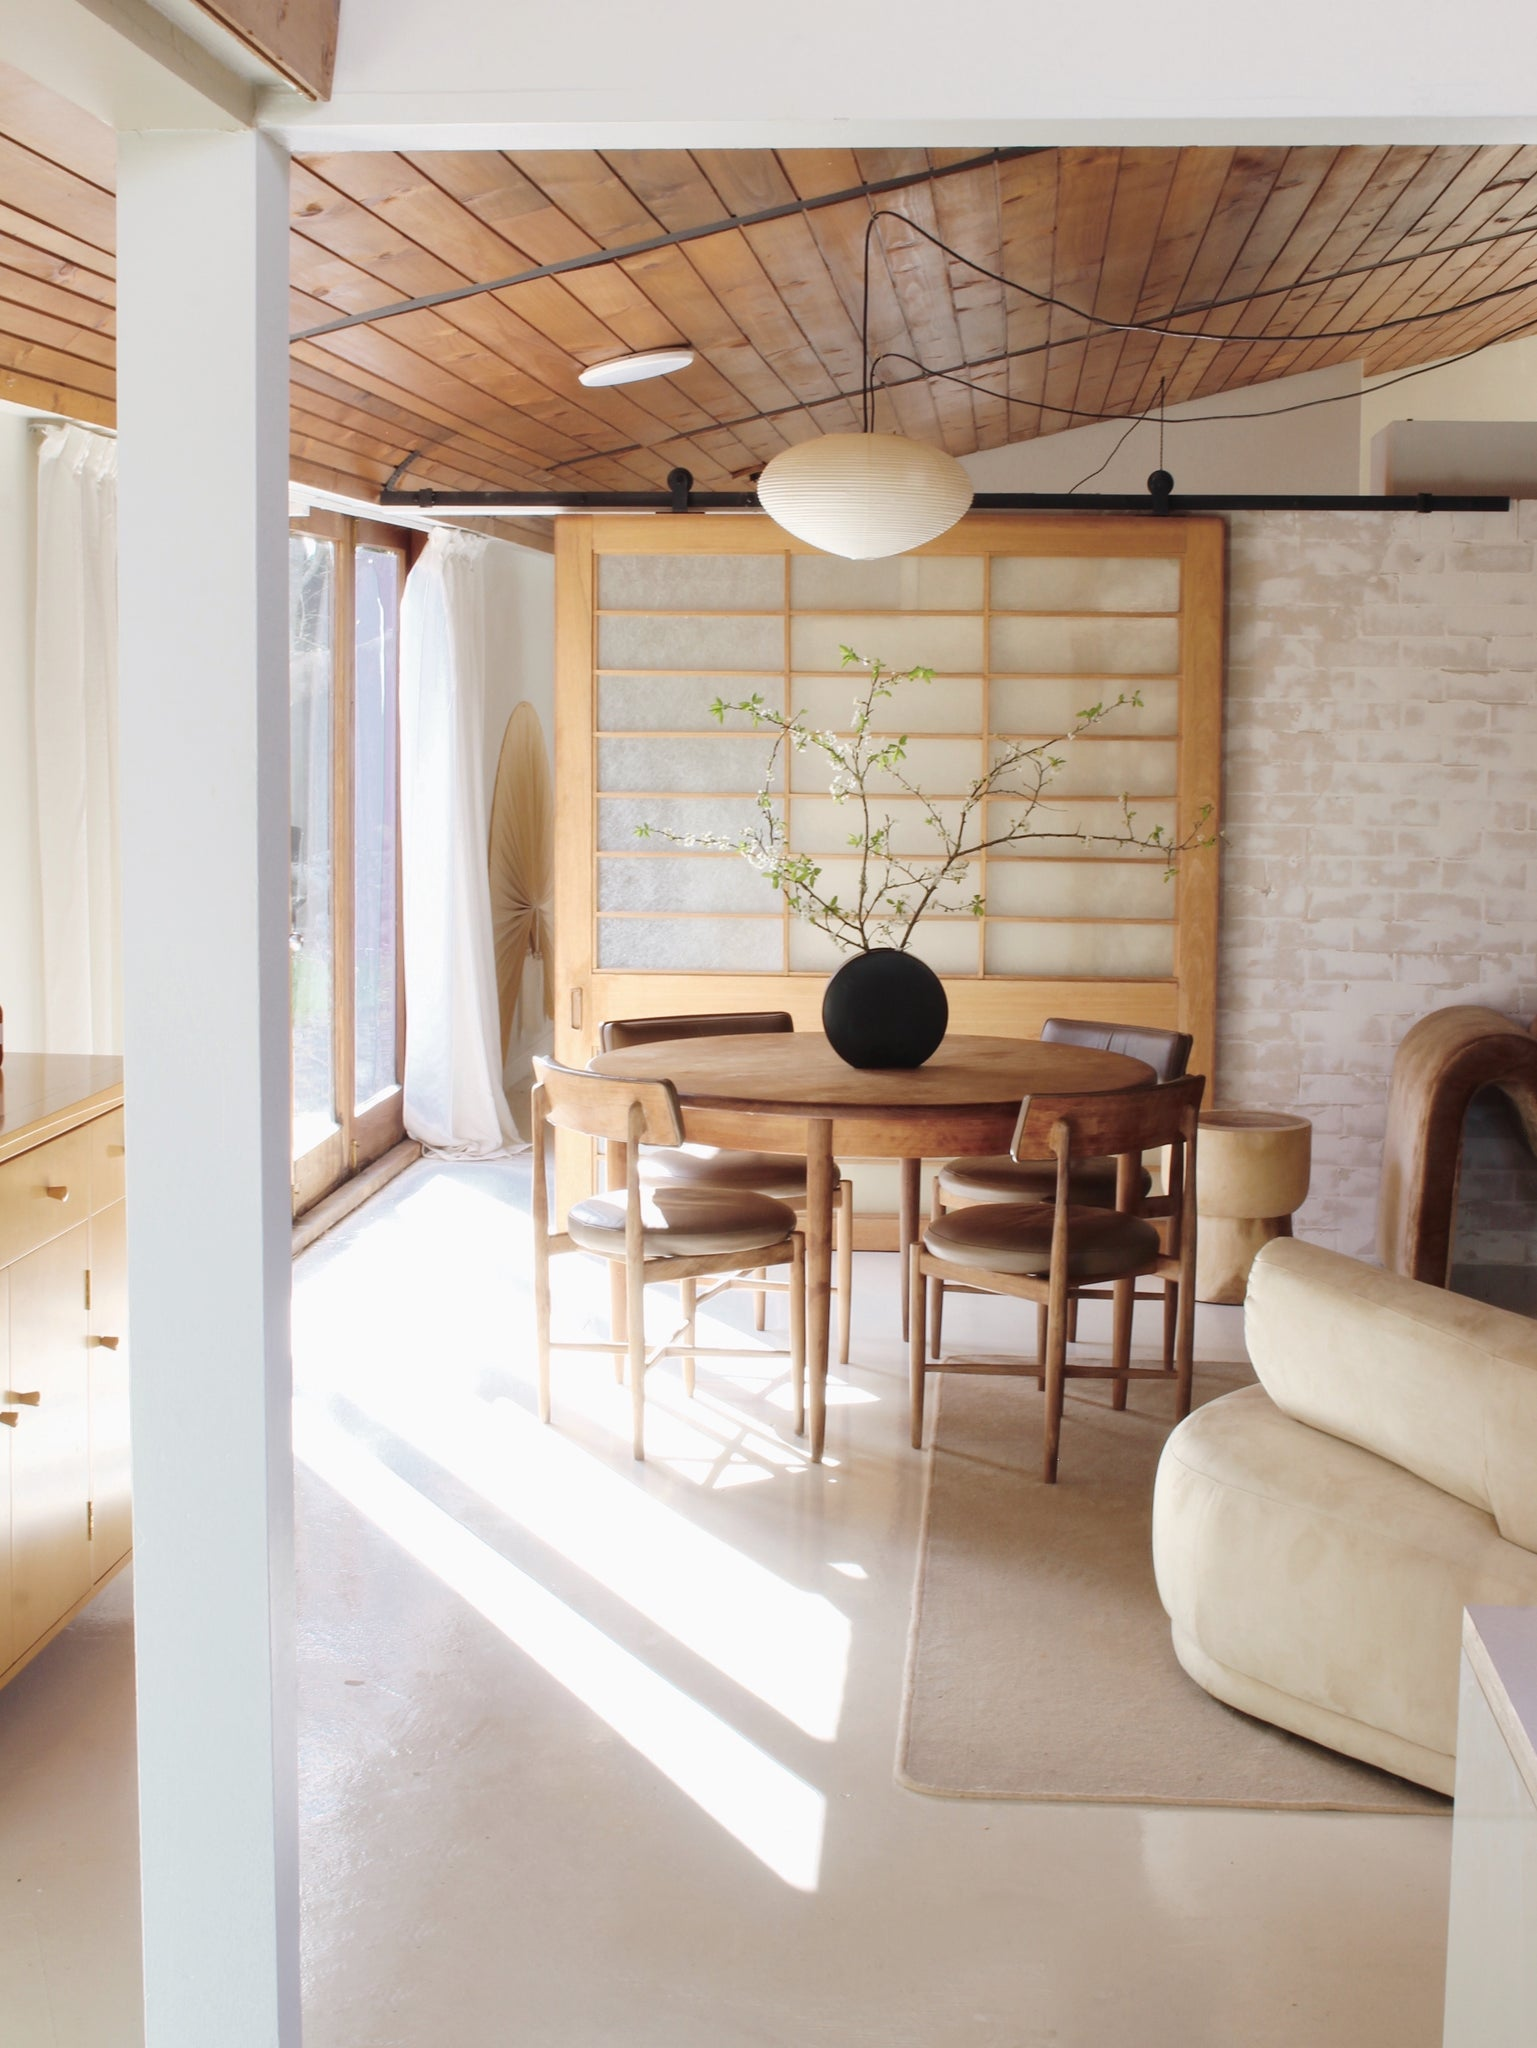 A Japanese And Scandinavian Interior Design Fusion Japandi George And Willy